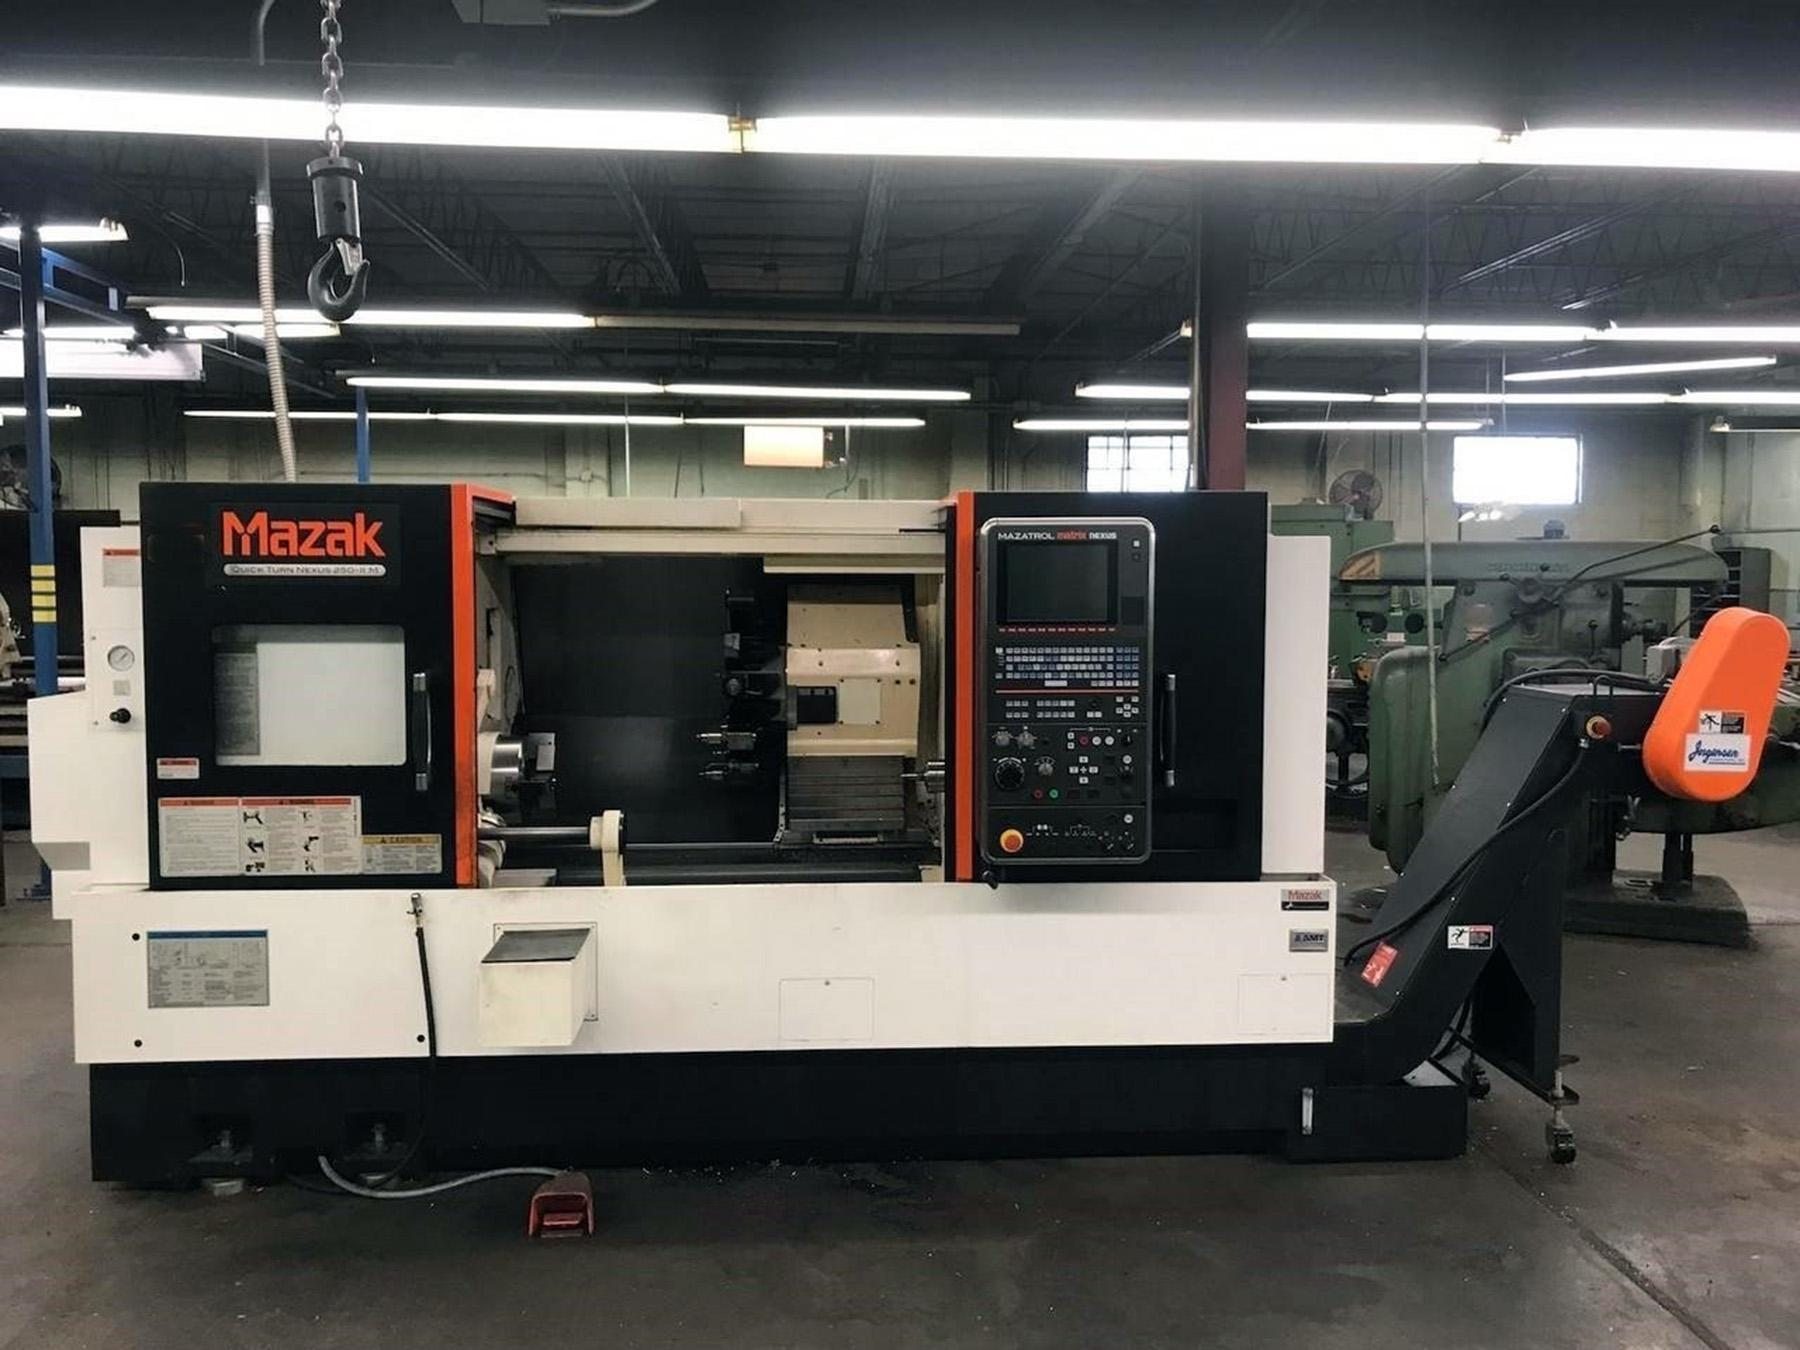 USED, MAZAK QTN 250M-II CNC TURNING CENTER WITH MILLING